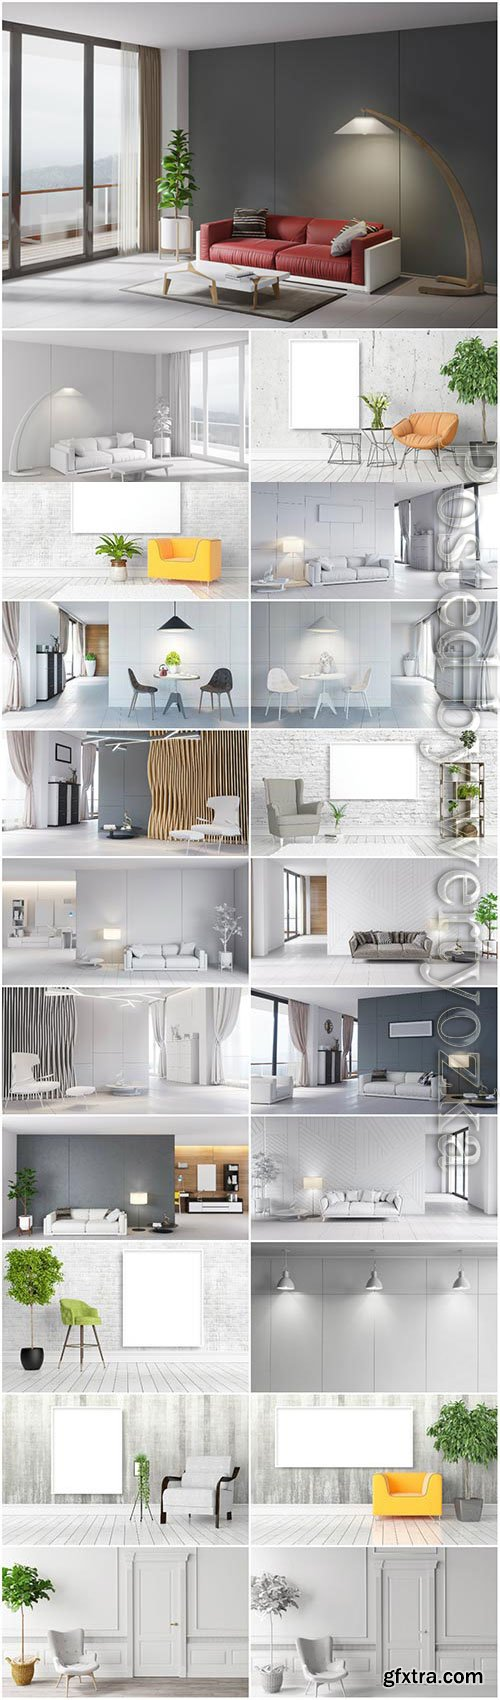 Modern interior in light colors stock photo